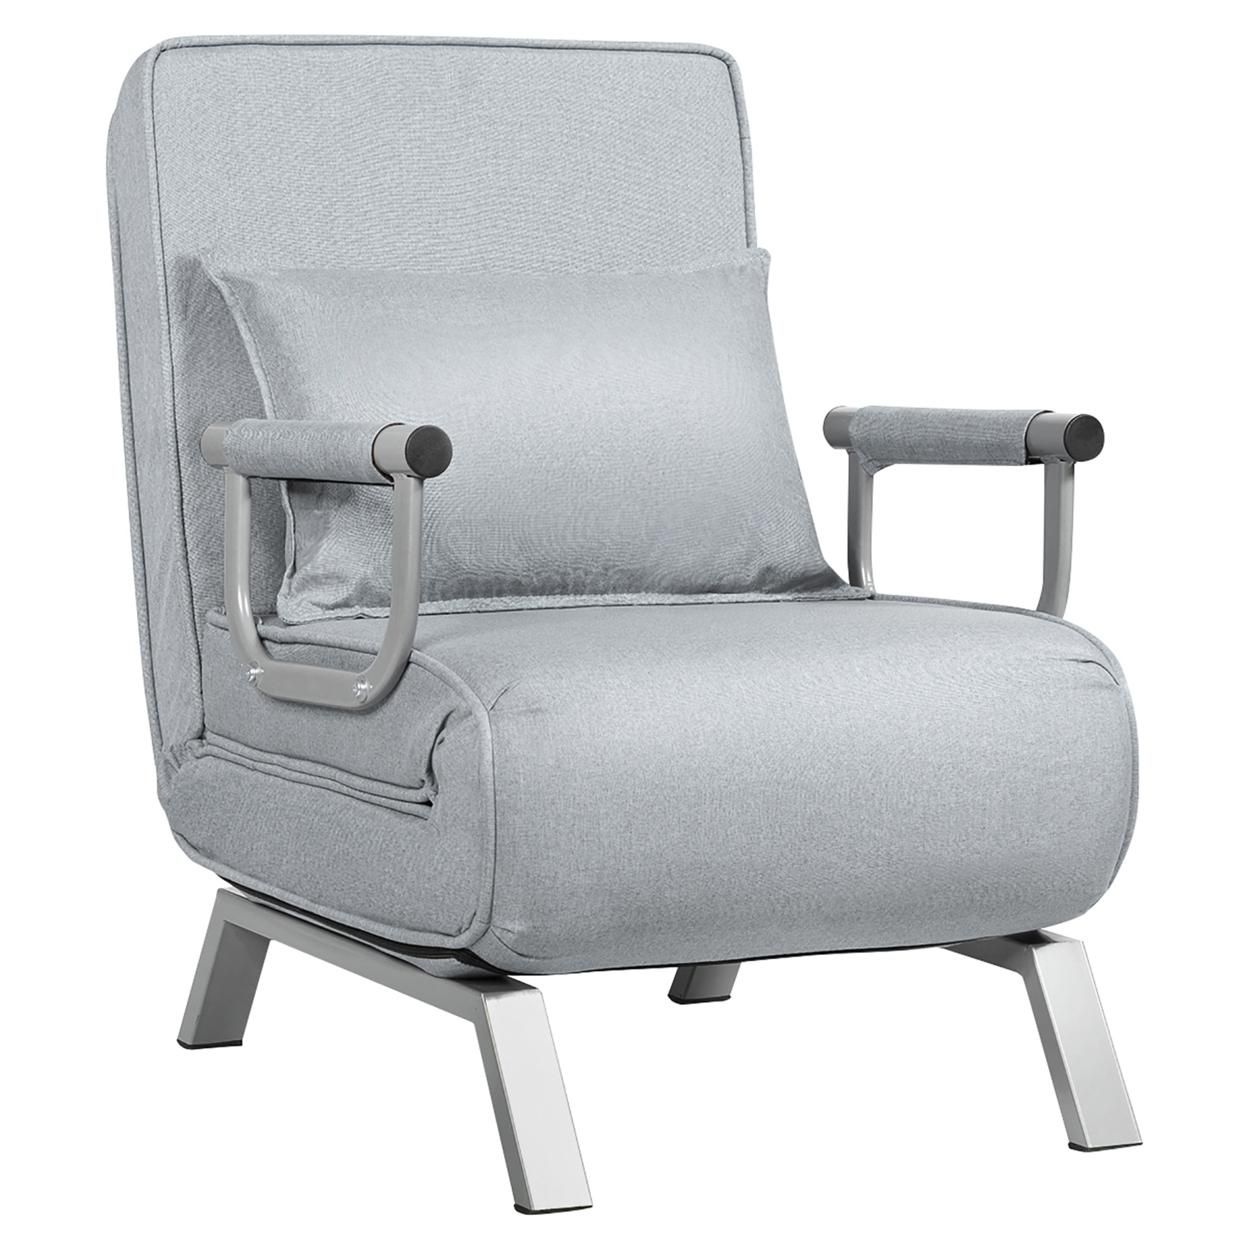 Costway Folding 5 Position Convertible Sleeper Bed Armchair Lounge w/ Pillow Light Gray\Coffee\Black